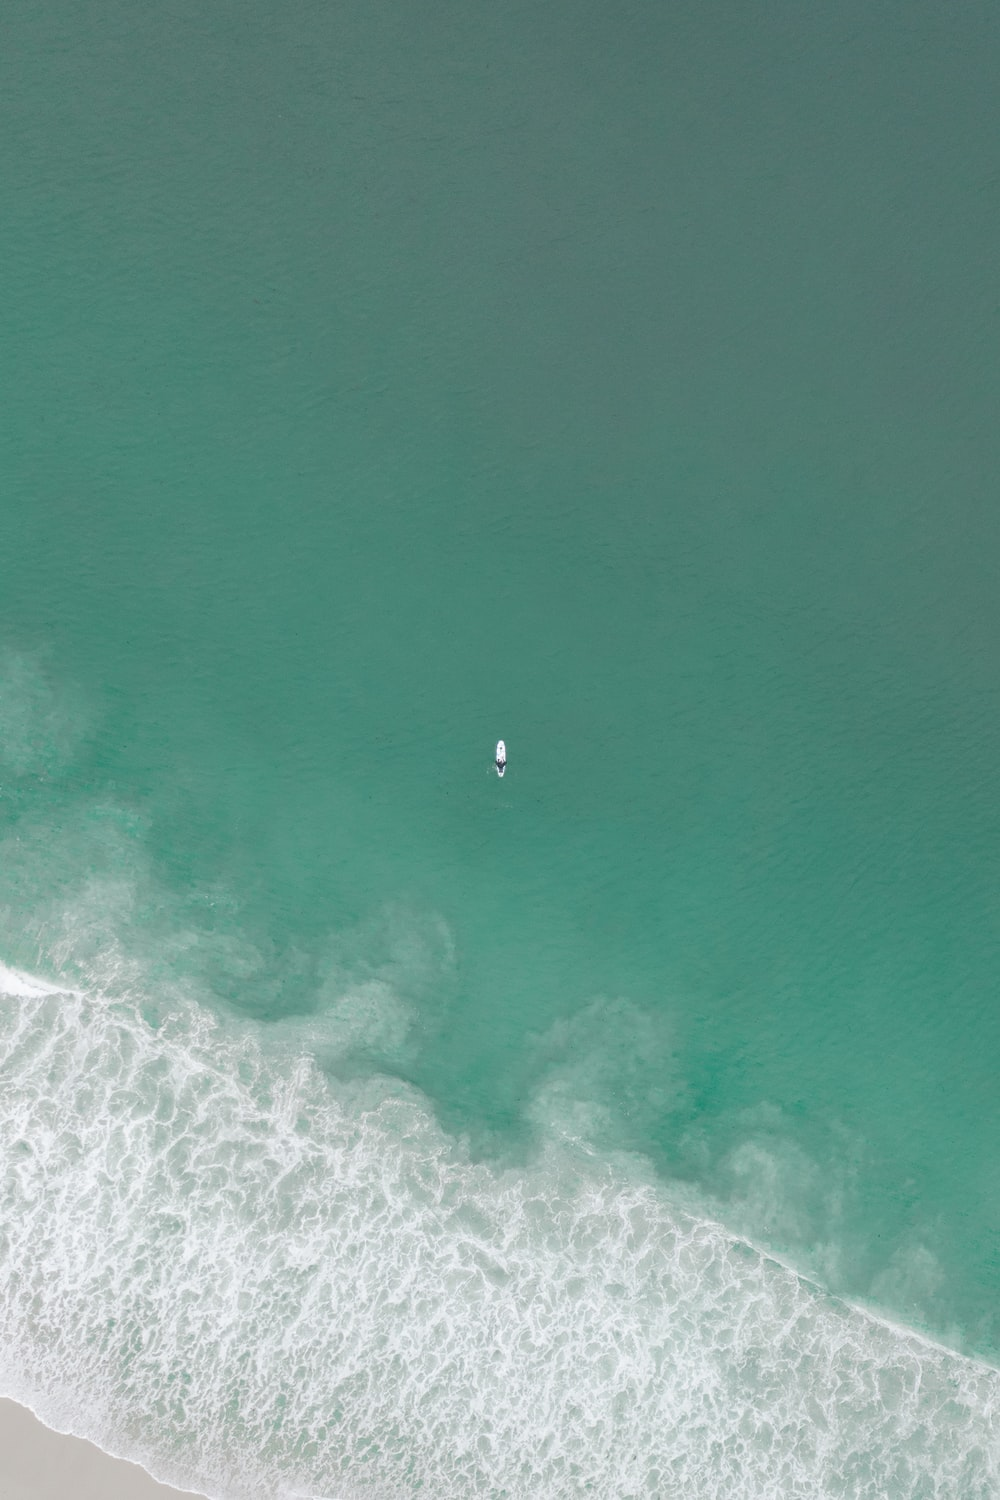 aerial view of person surfing on sea waves during daytime